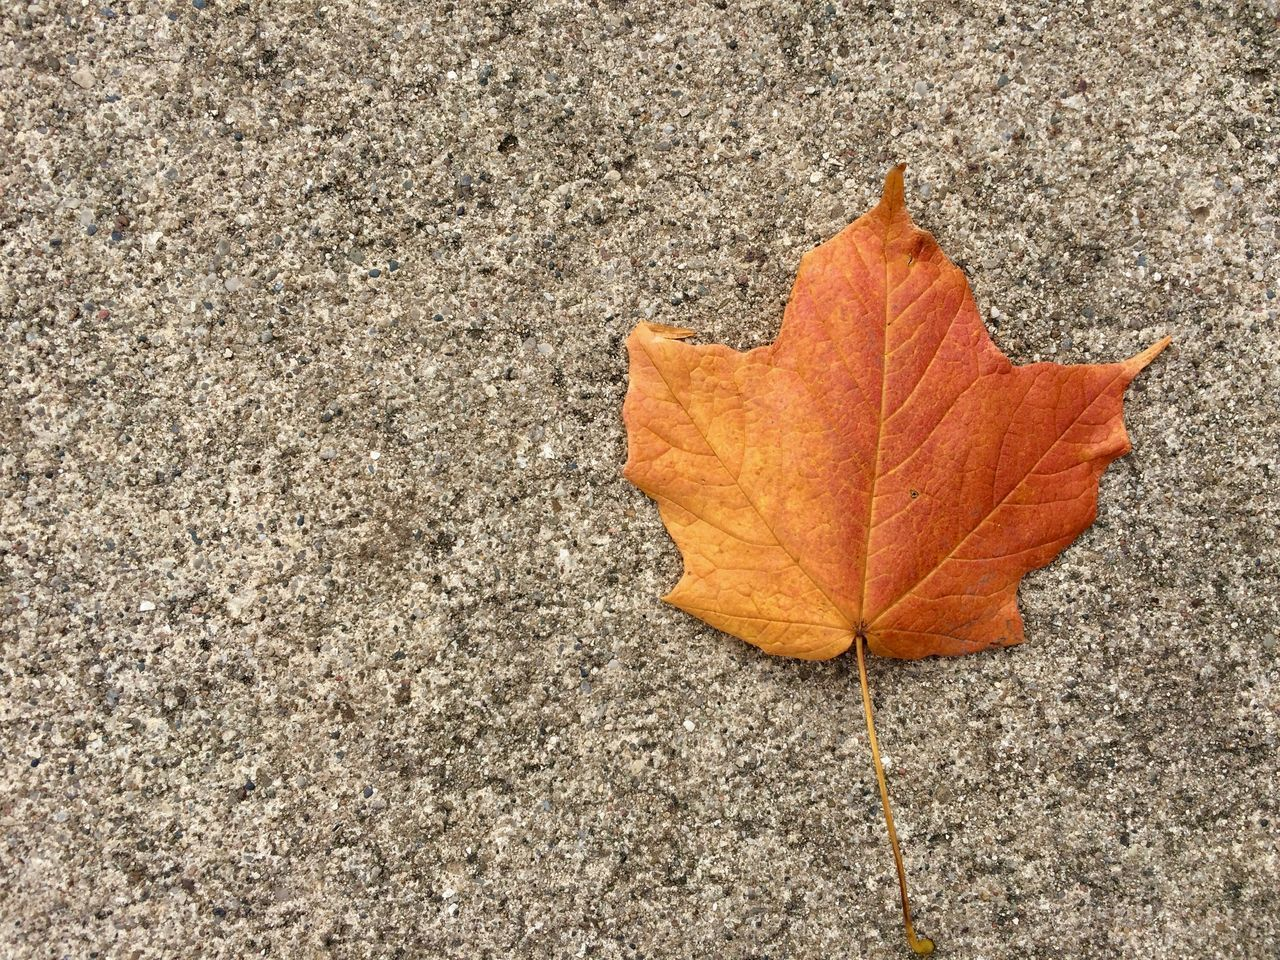 leaf, plant part, autumn, change, dry, orange color, close-up, nature, no people, textured, day, high angle view, vulnerability, fragility, falling, outdoors, maple leaf, rough, plant, leaf vein, leaves, natural condition, concrete, autumn collection